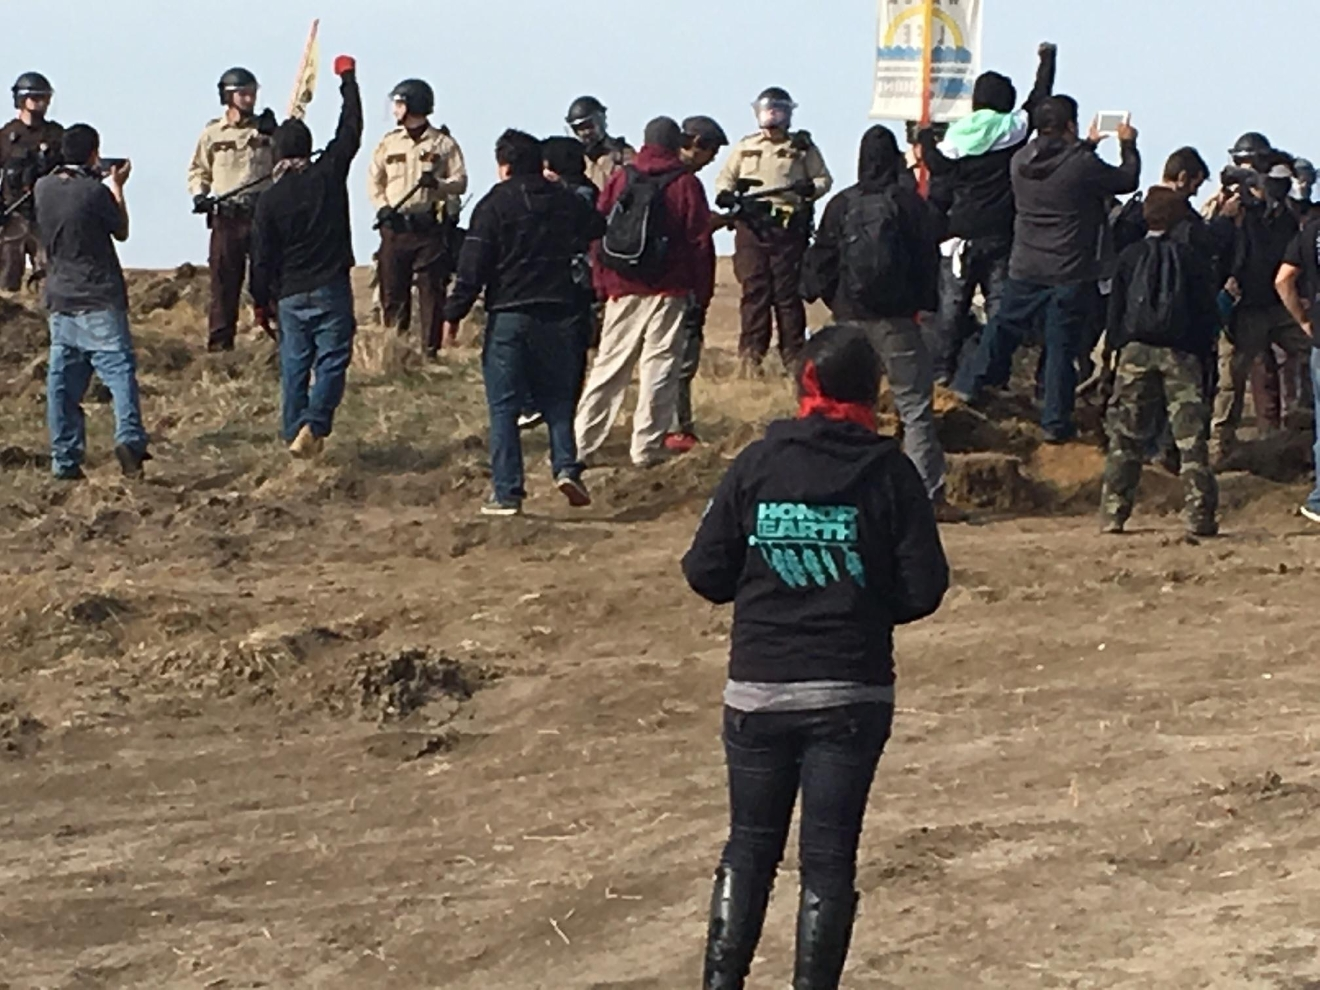 Demonstrators cheer as armed soldiers and law enforcement officers move in to force Dakota Access pipeline protesters off private land in North Dakota on Thursday, Oct. 27, 2016, where they had camped to block construction. The pipeline is to carry oil from western North Dakota through South Dakota and Iowa to an existing pipeline in Patoka, Ill. (Mike McCleary/The Bismarck Tribune via AP)